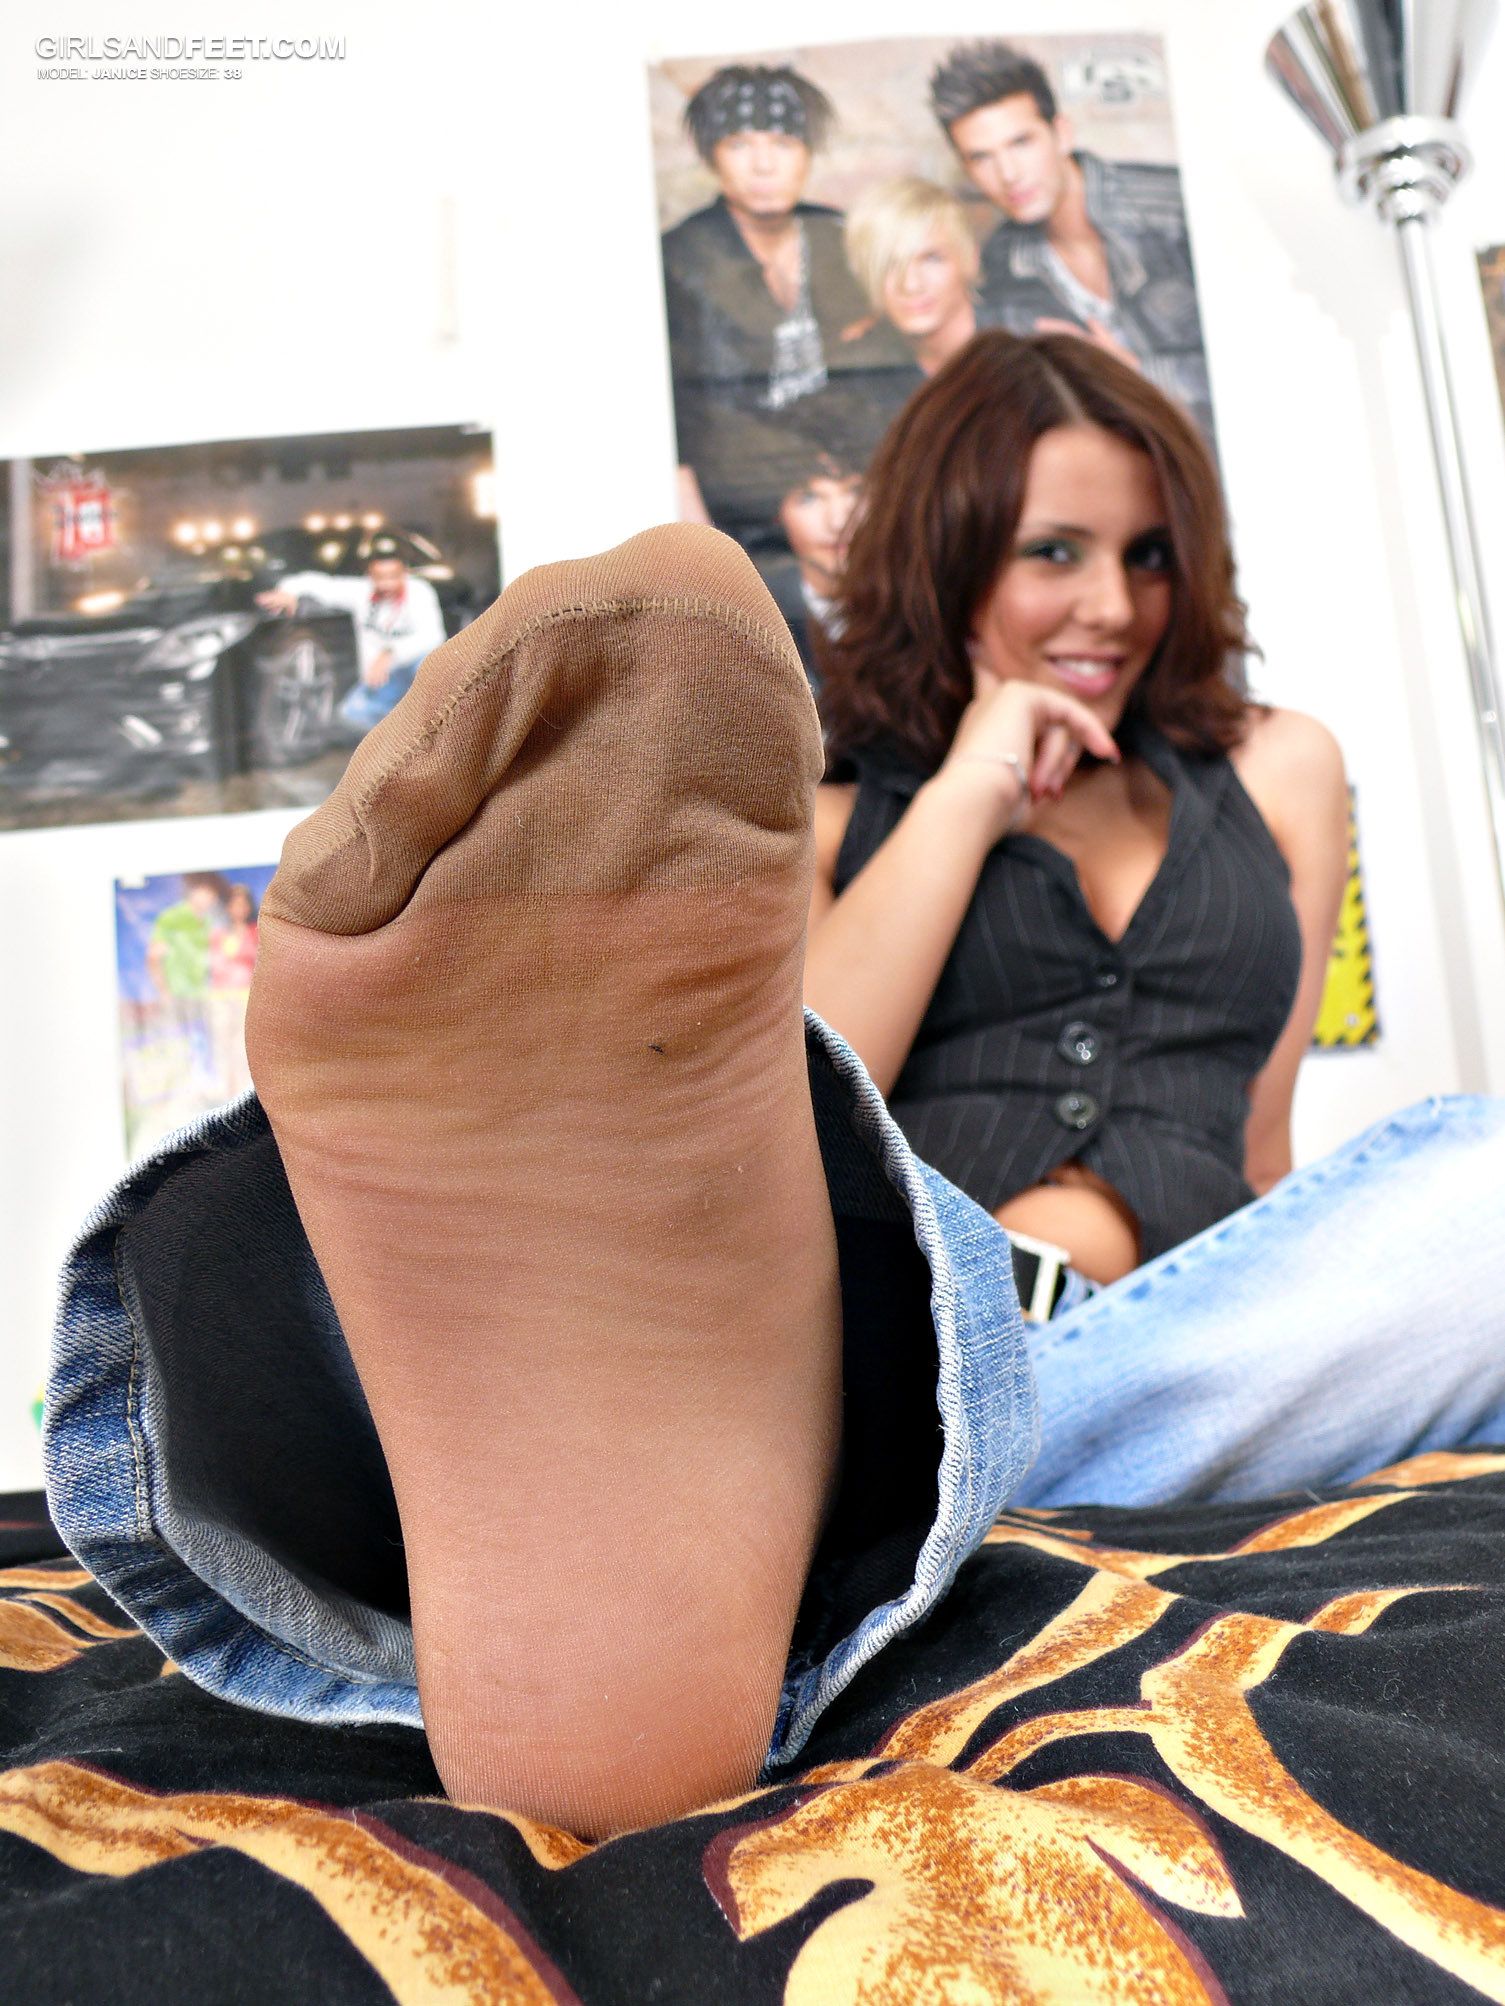 Lick cum from feet